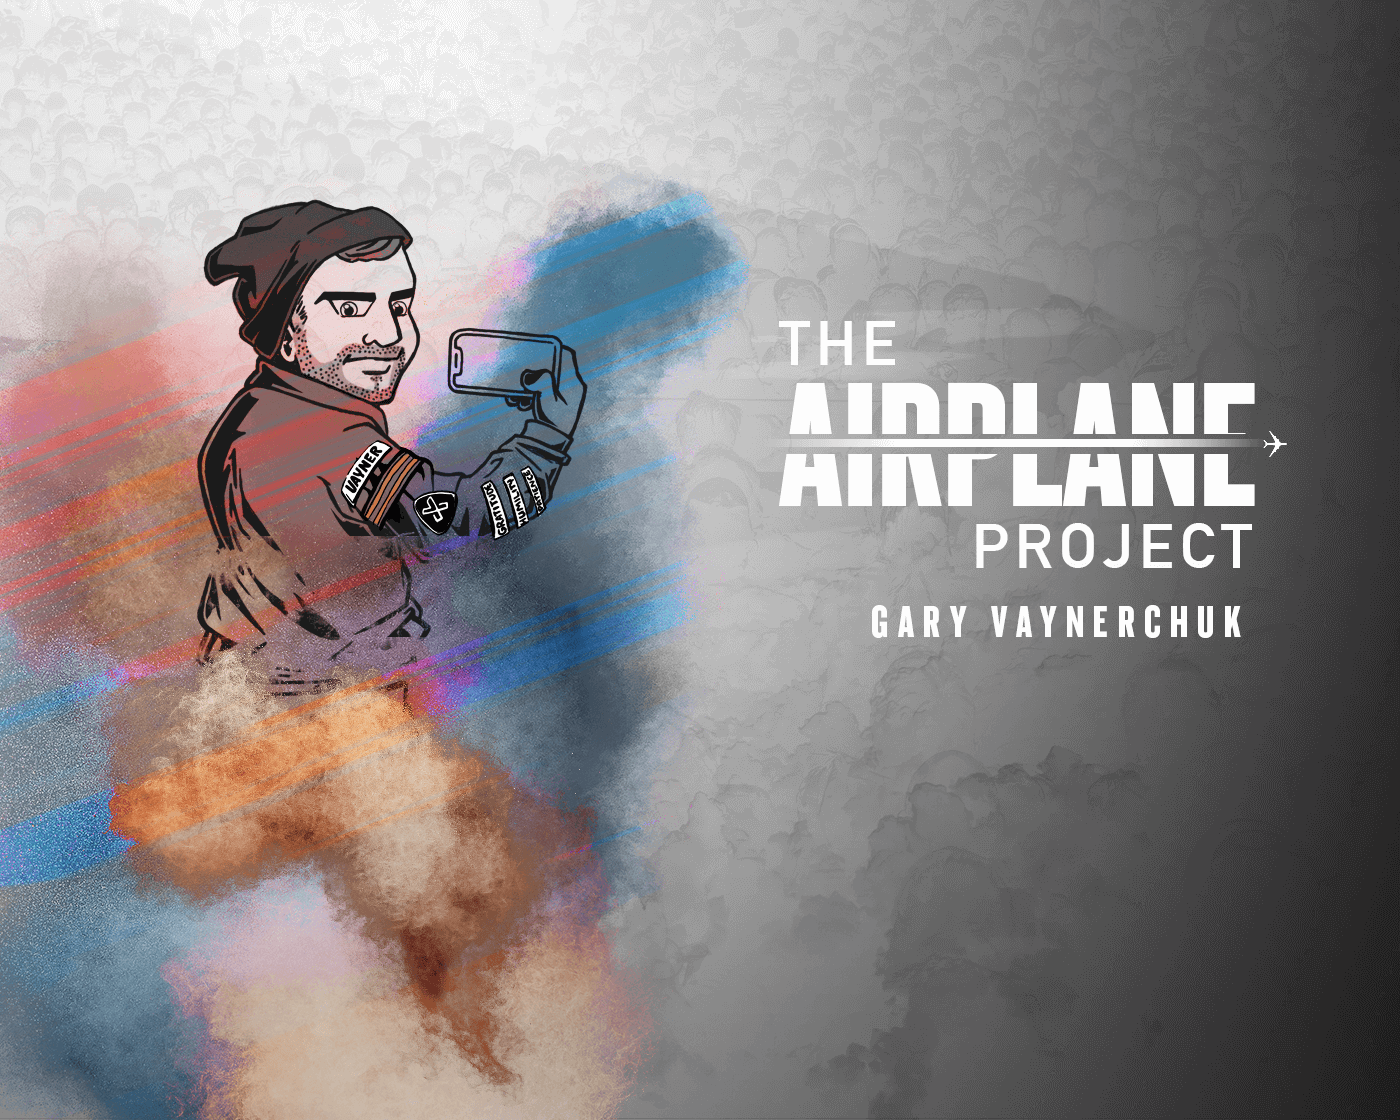 The Airplane Project